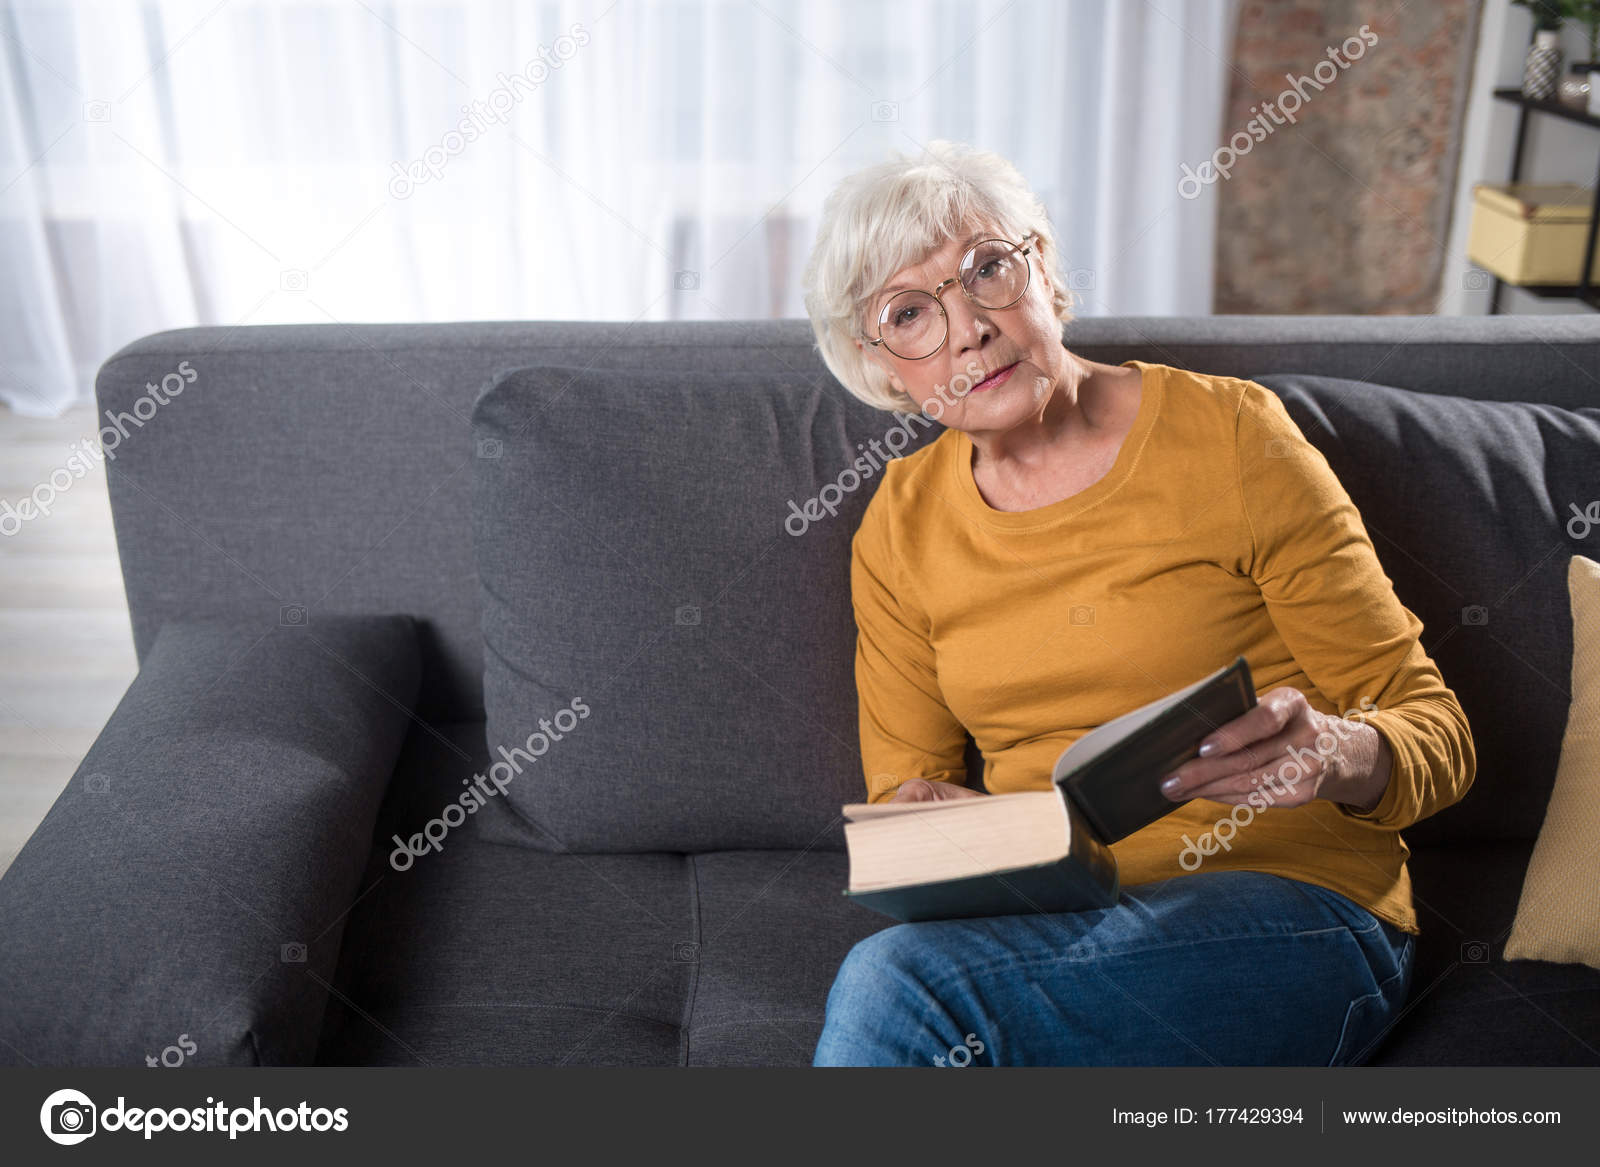 Old Lady Sitting On Couch Intelligent Pensive Old Lady Sitting